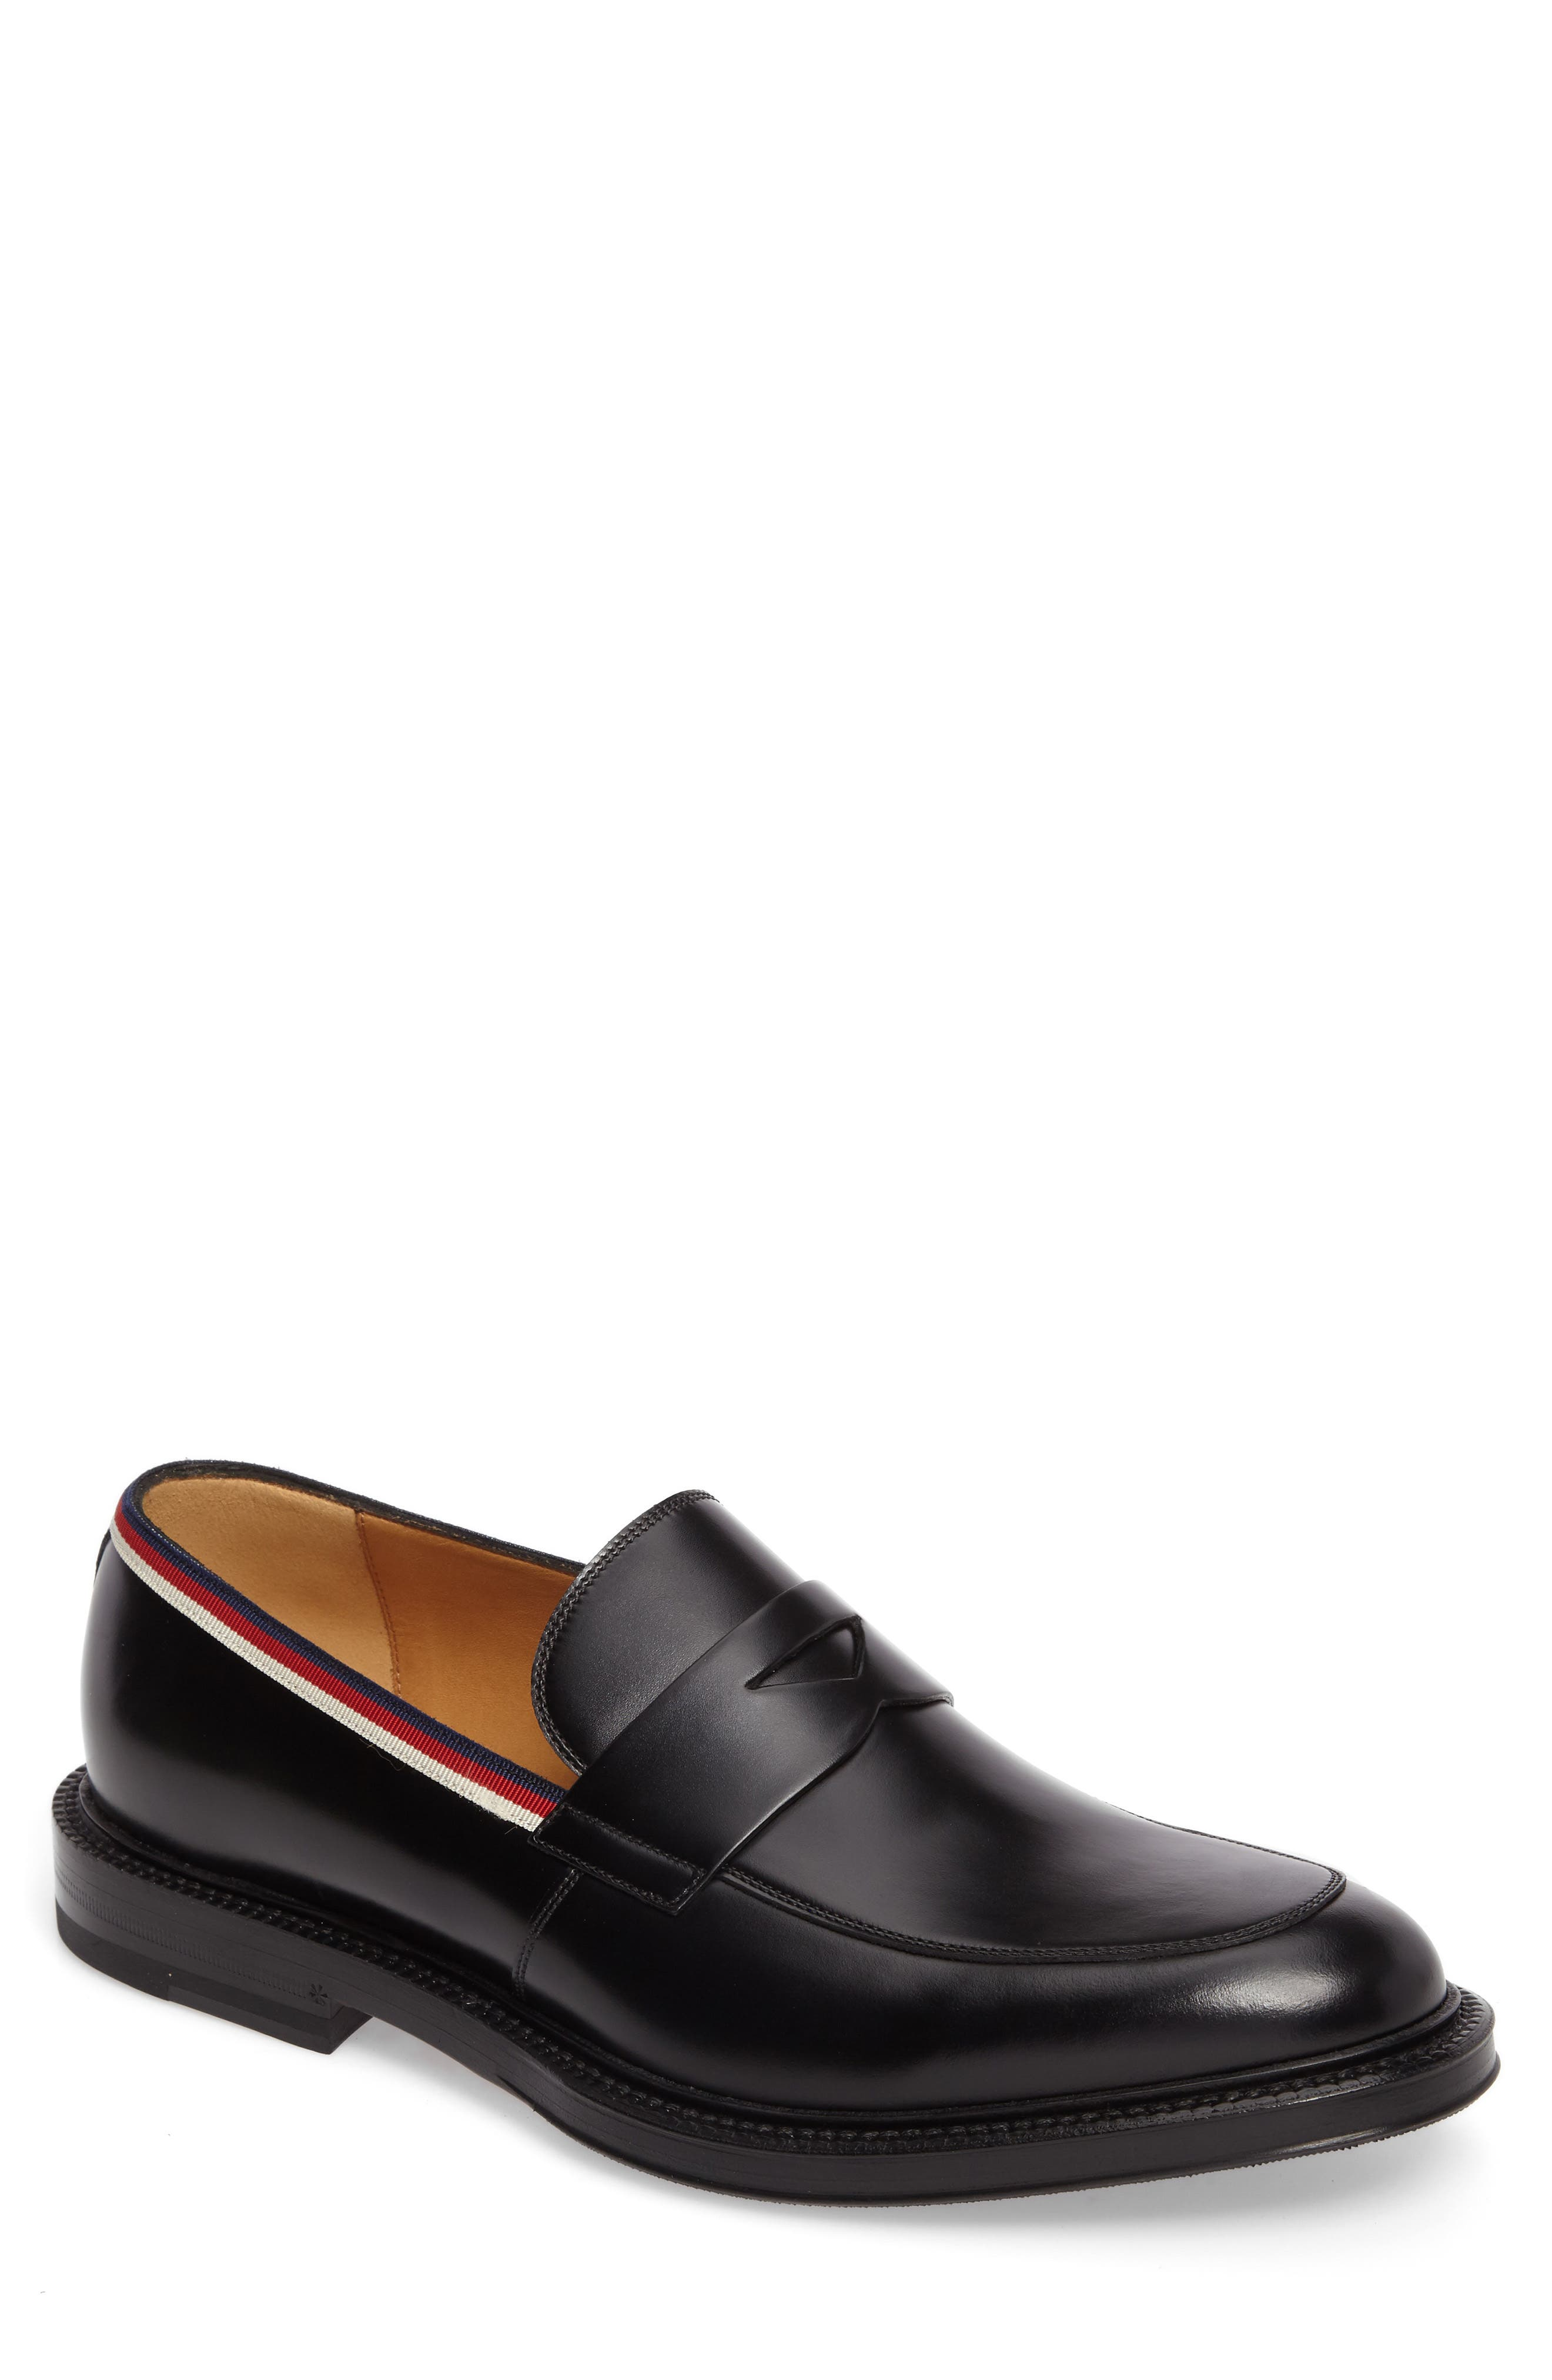 GUCCI,                             Beyond Penny Loafer,                             Main thumbnail 1, color,                             007